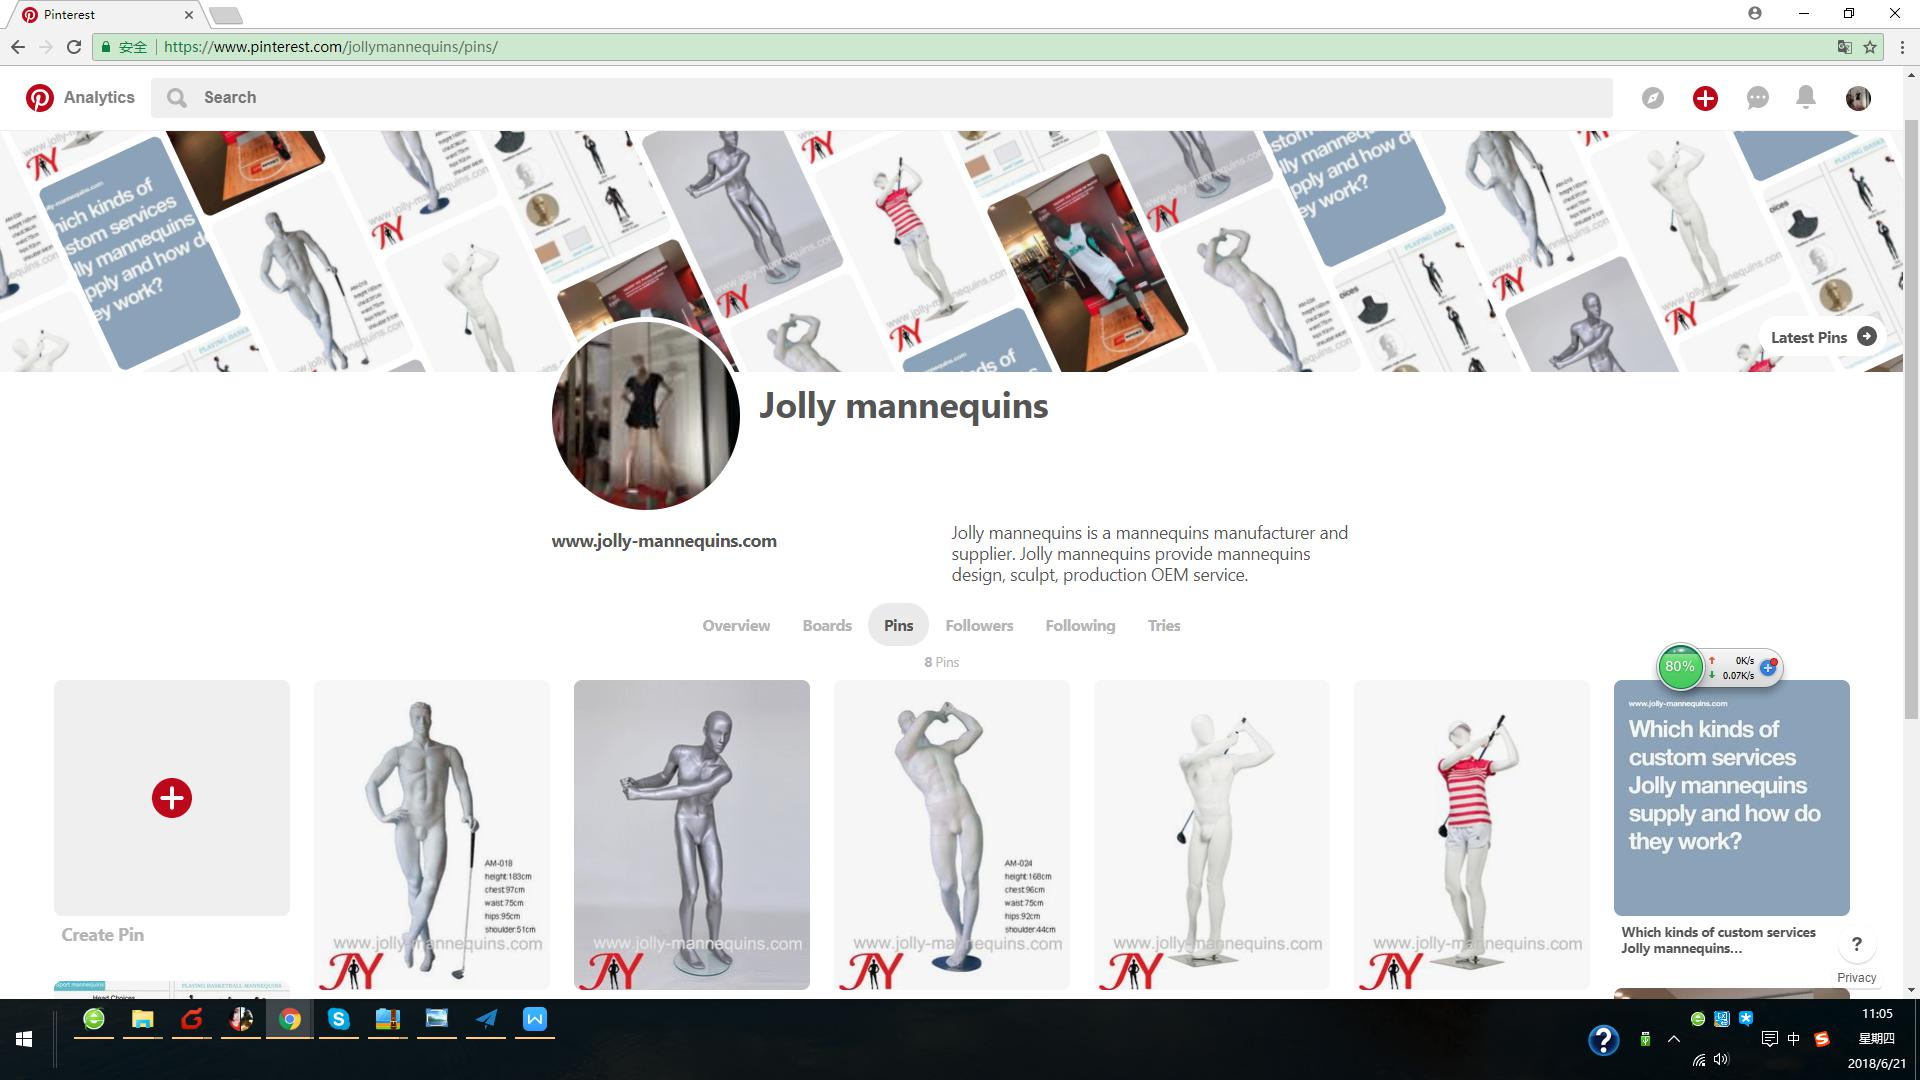 Jolly mannequins-pinterest account is launched